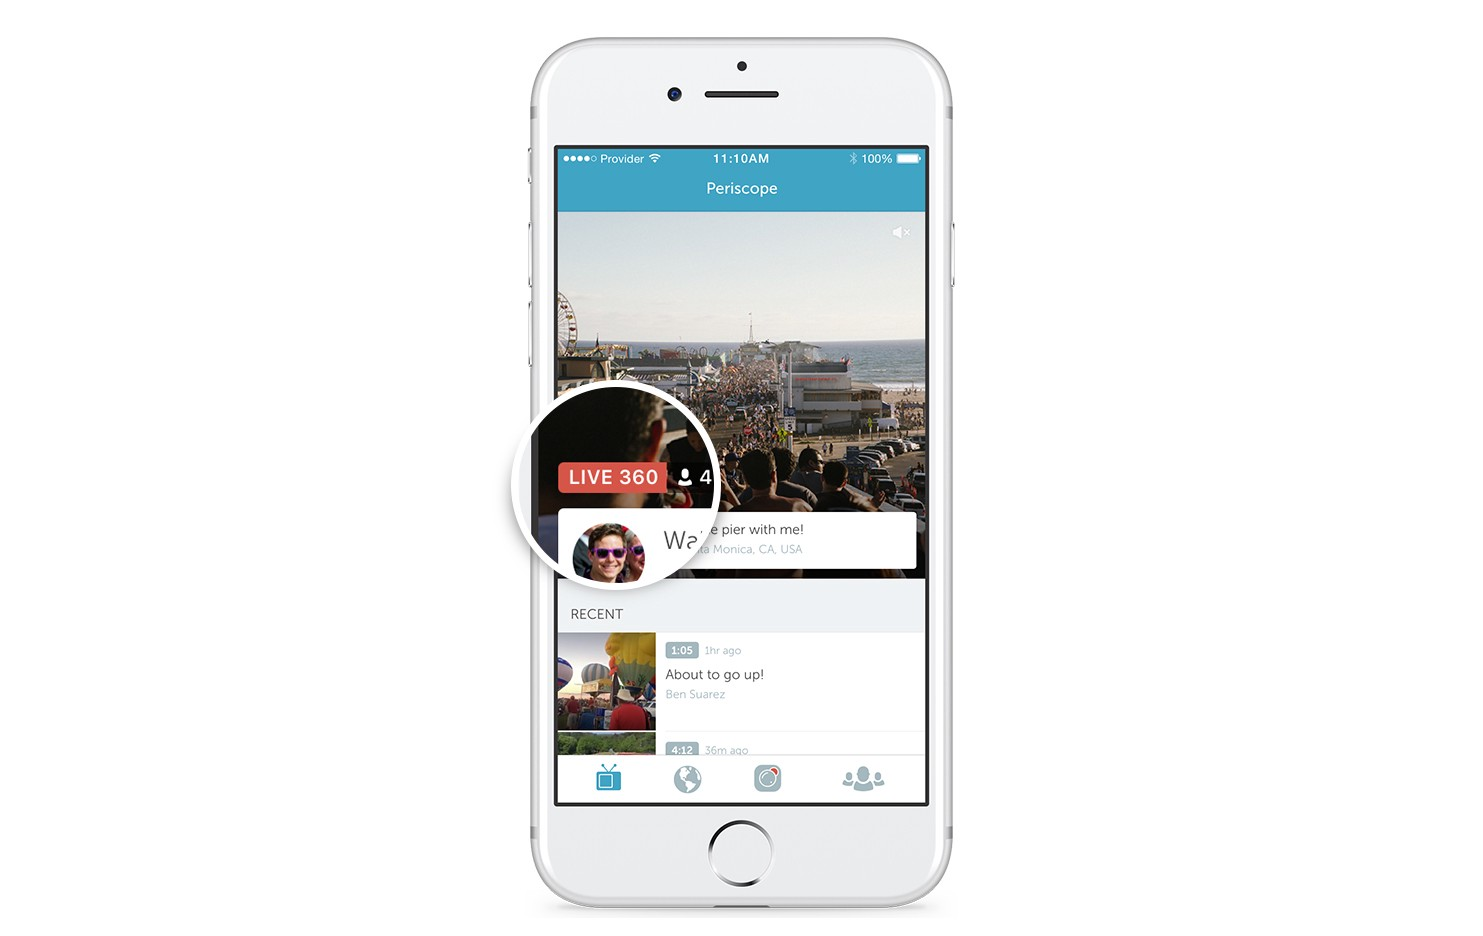 Twitter video 360 Live Persicope